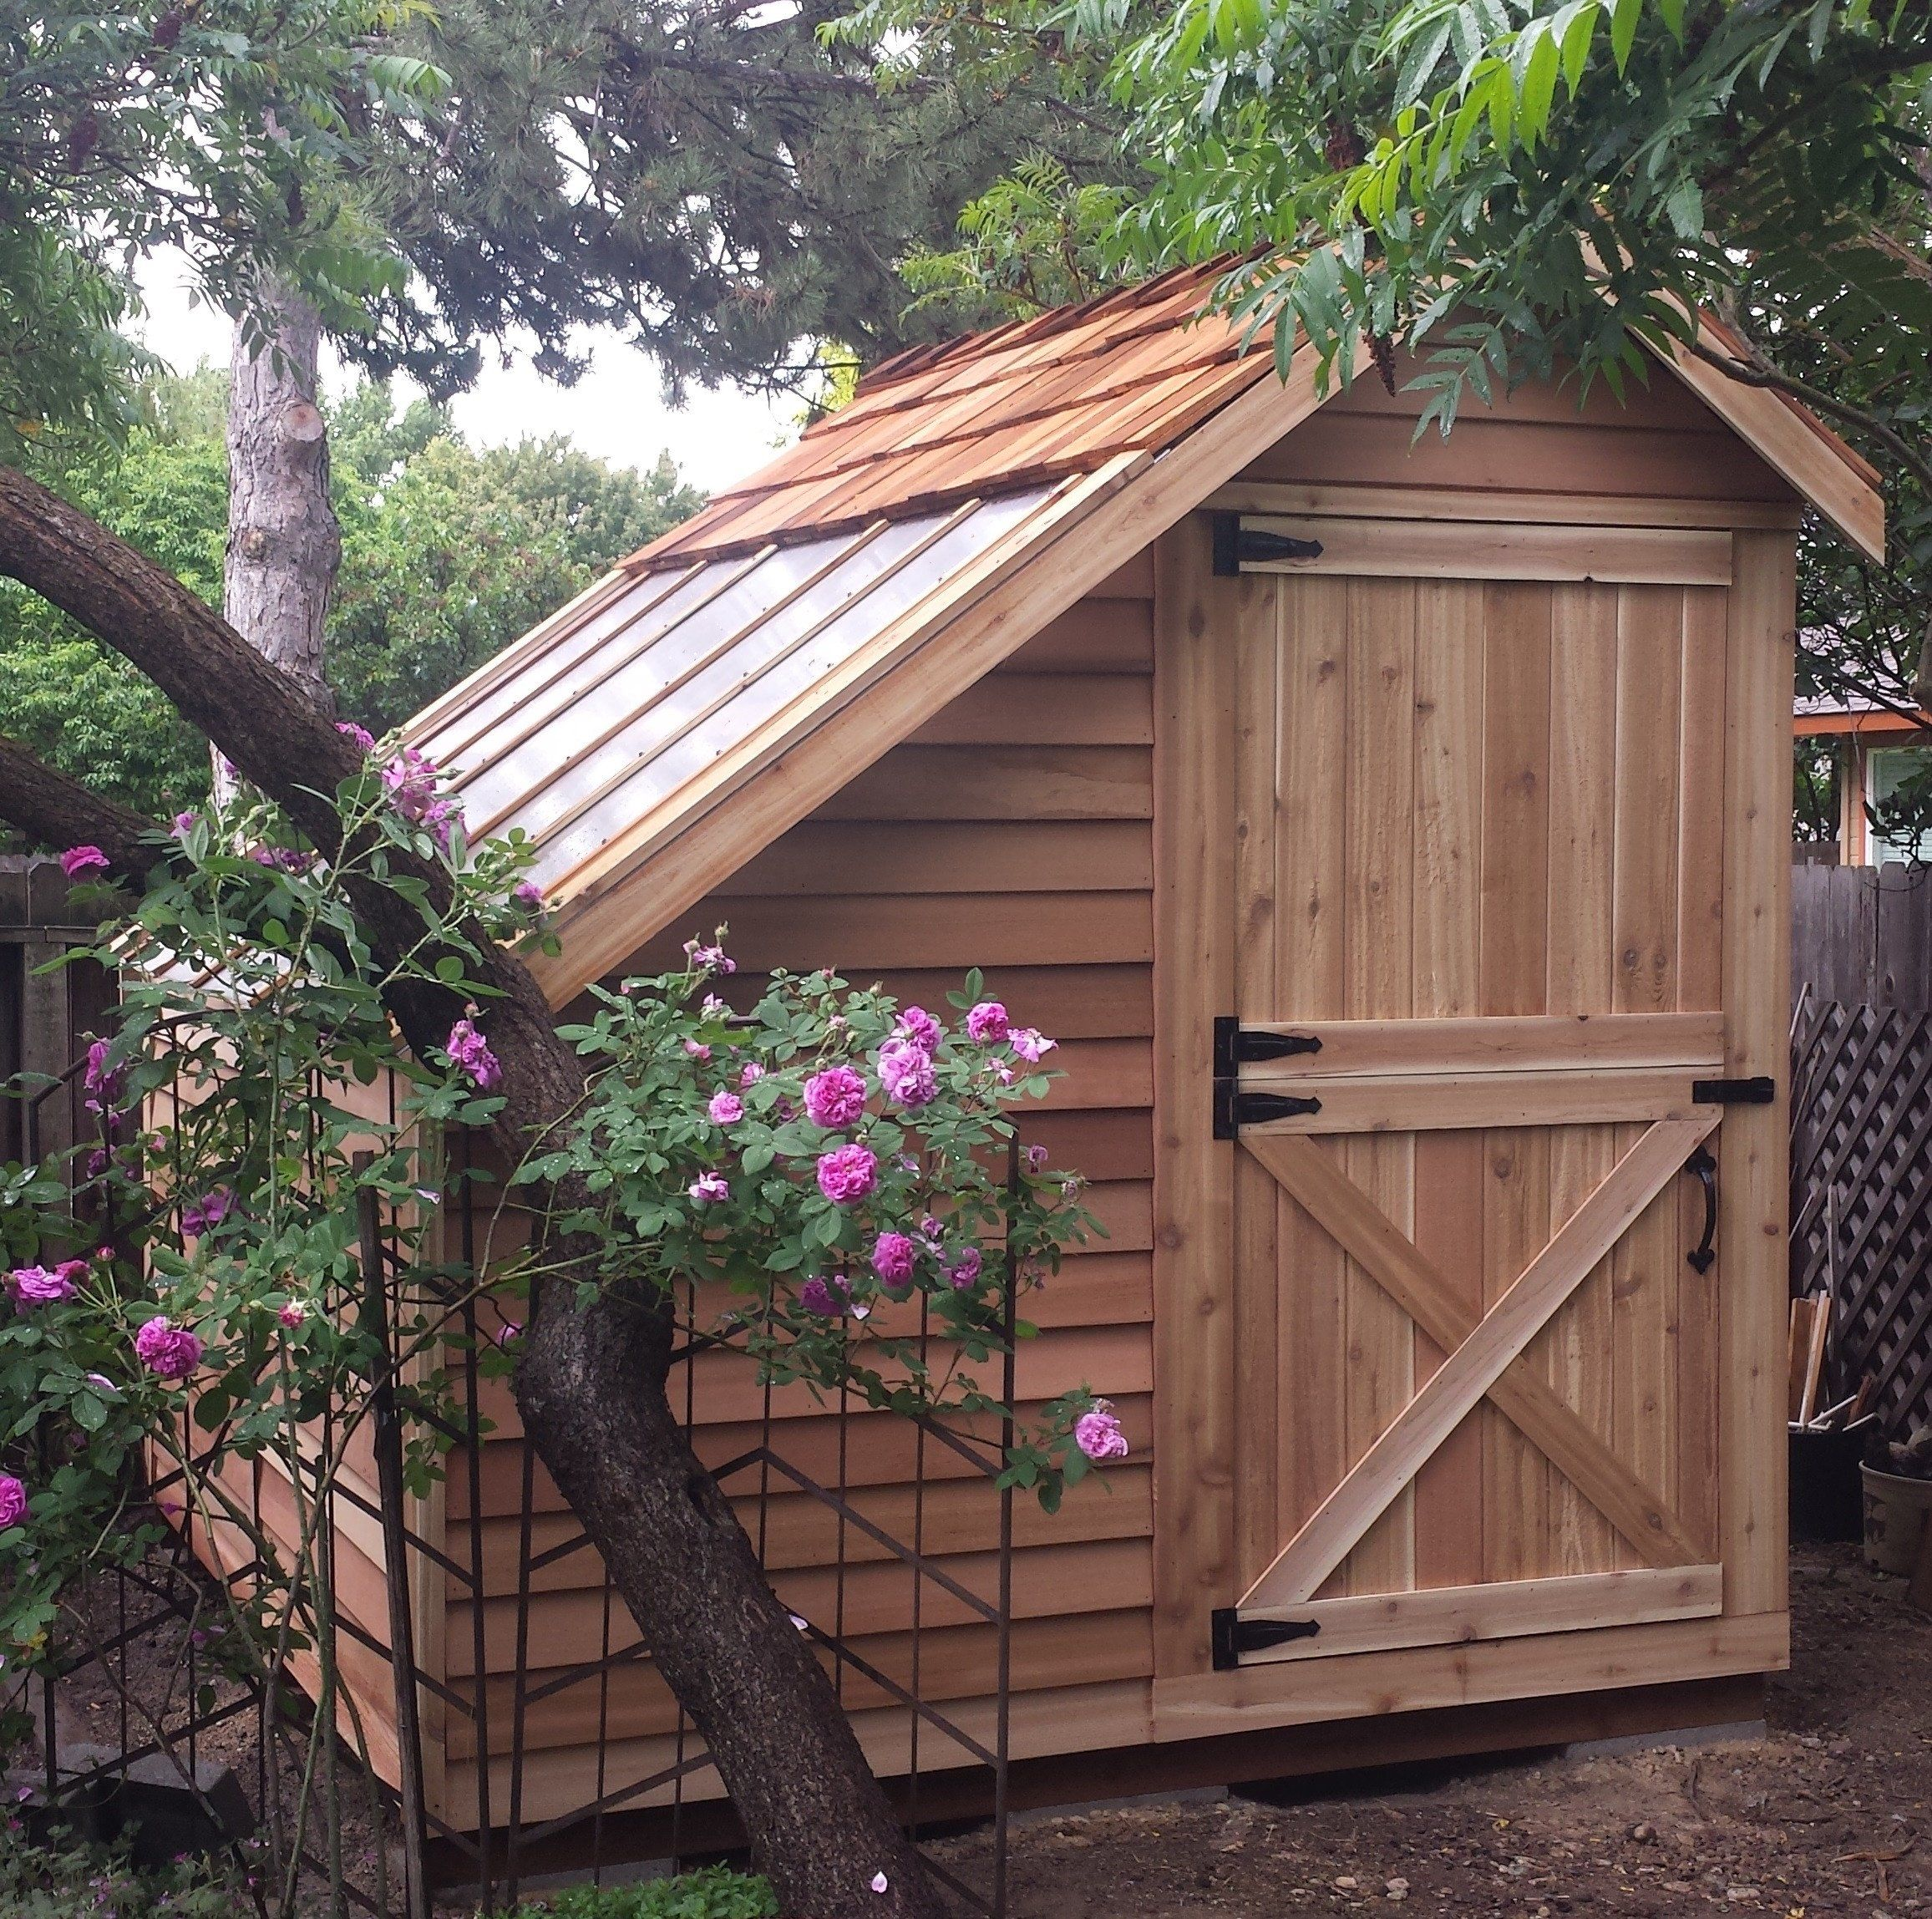 Diy Sheds For Sale: Sunhouses - Western Red Cedar Greenhouses